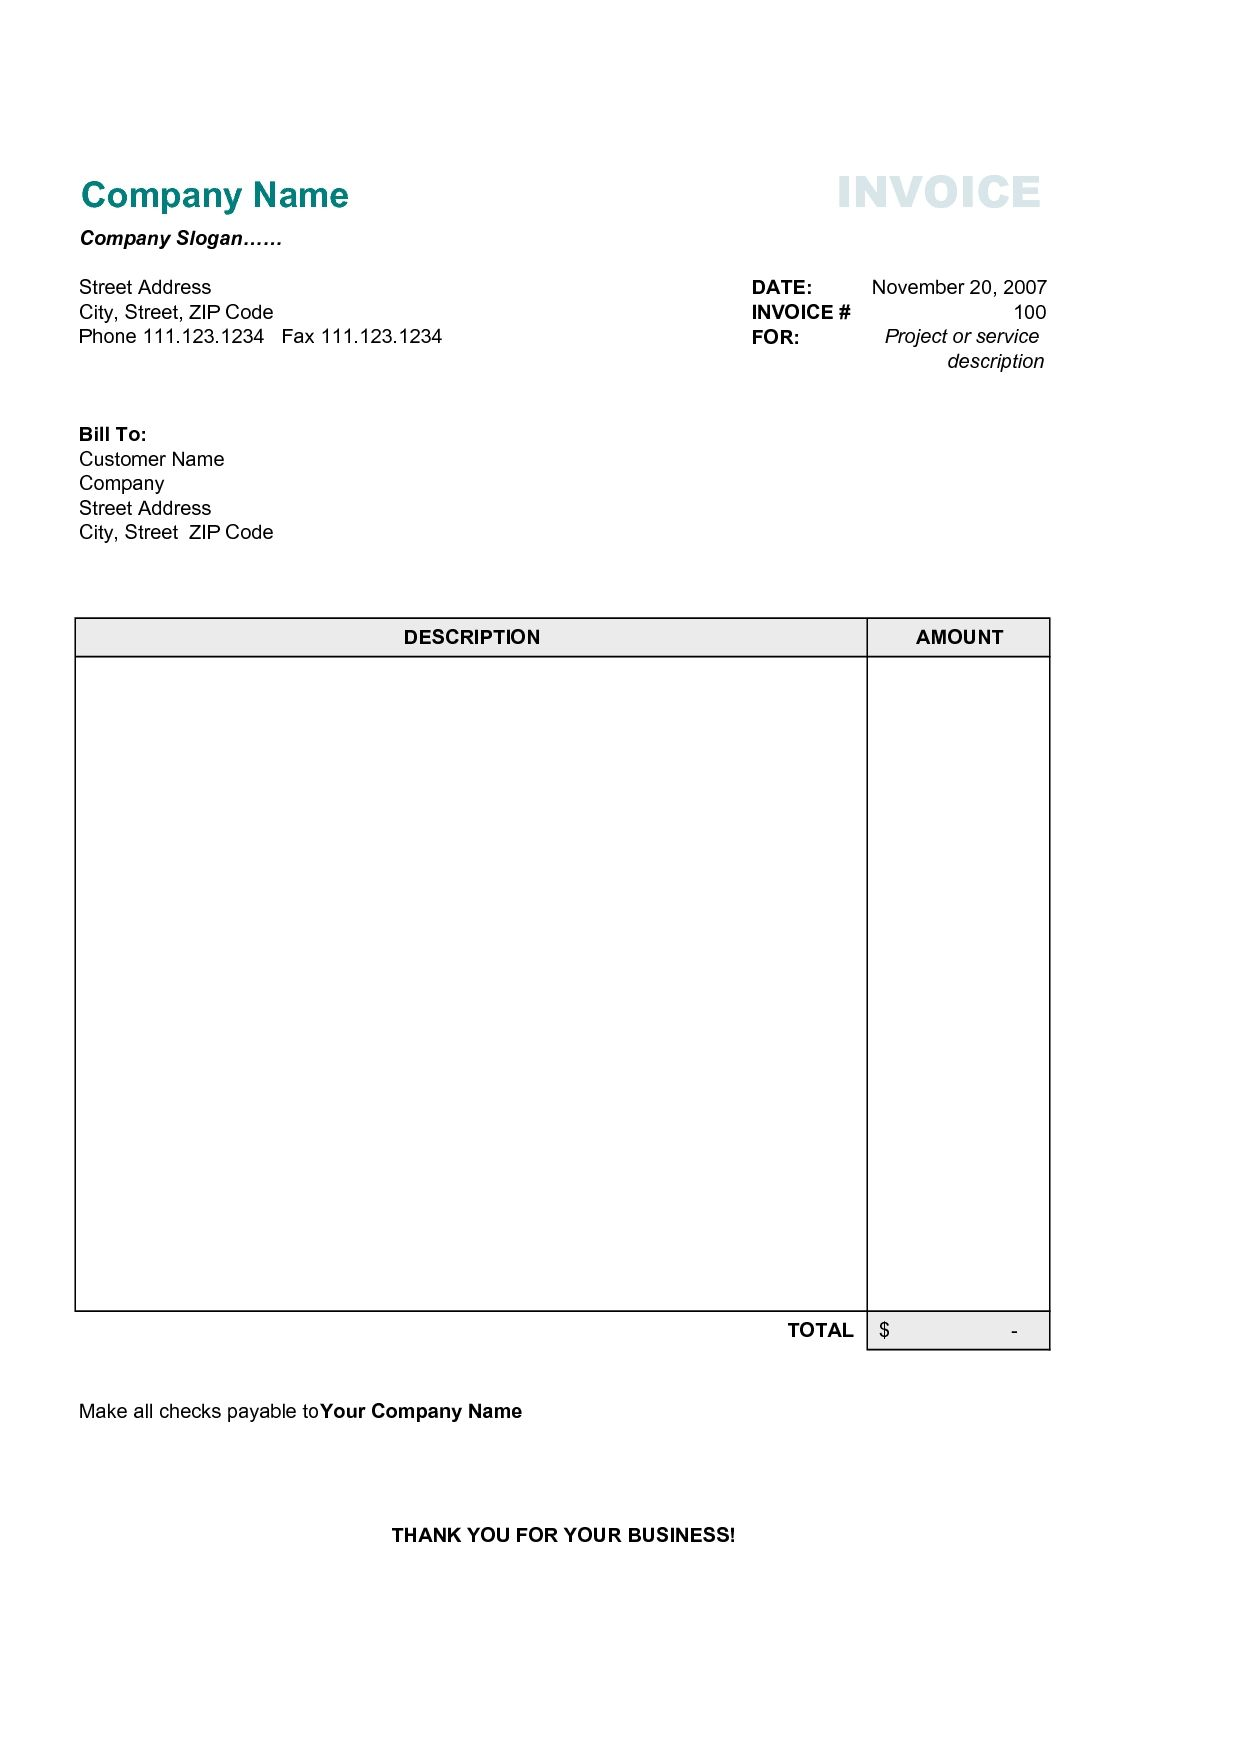 Free Business Invoice Template Best Business Template Free Invoice - Free business invoice forms for service business